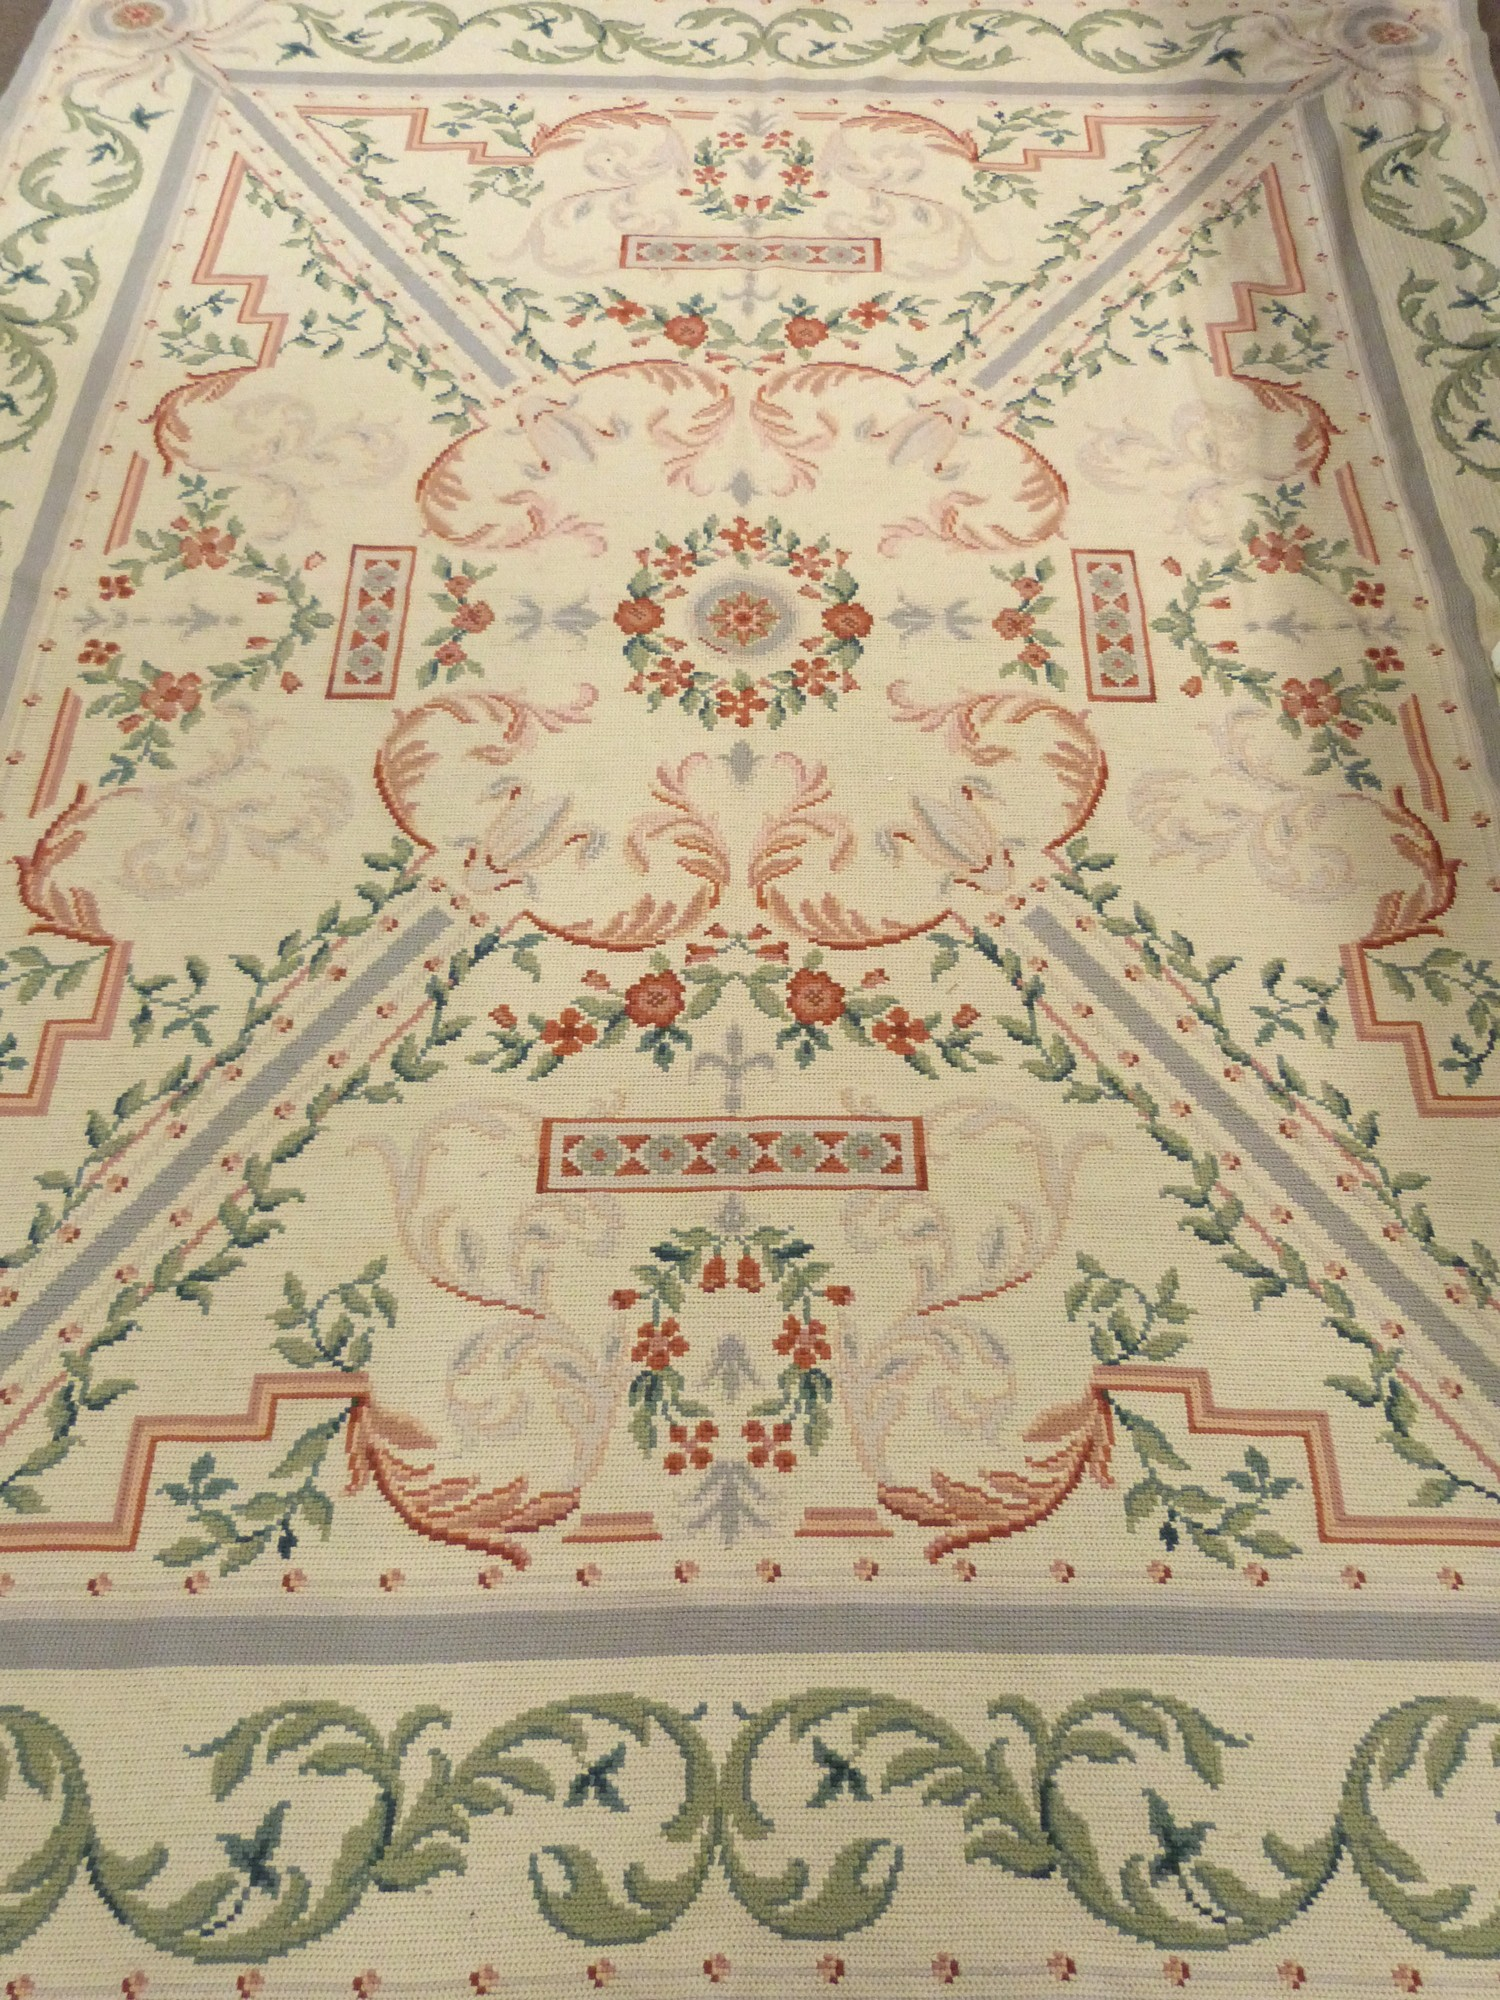 Woolwork carpet, cream ground, pink and green designs, green foliate scroll border 10 x 8ft - Image 2 of 3